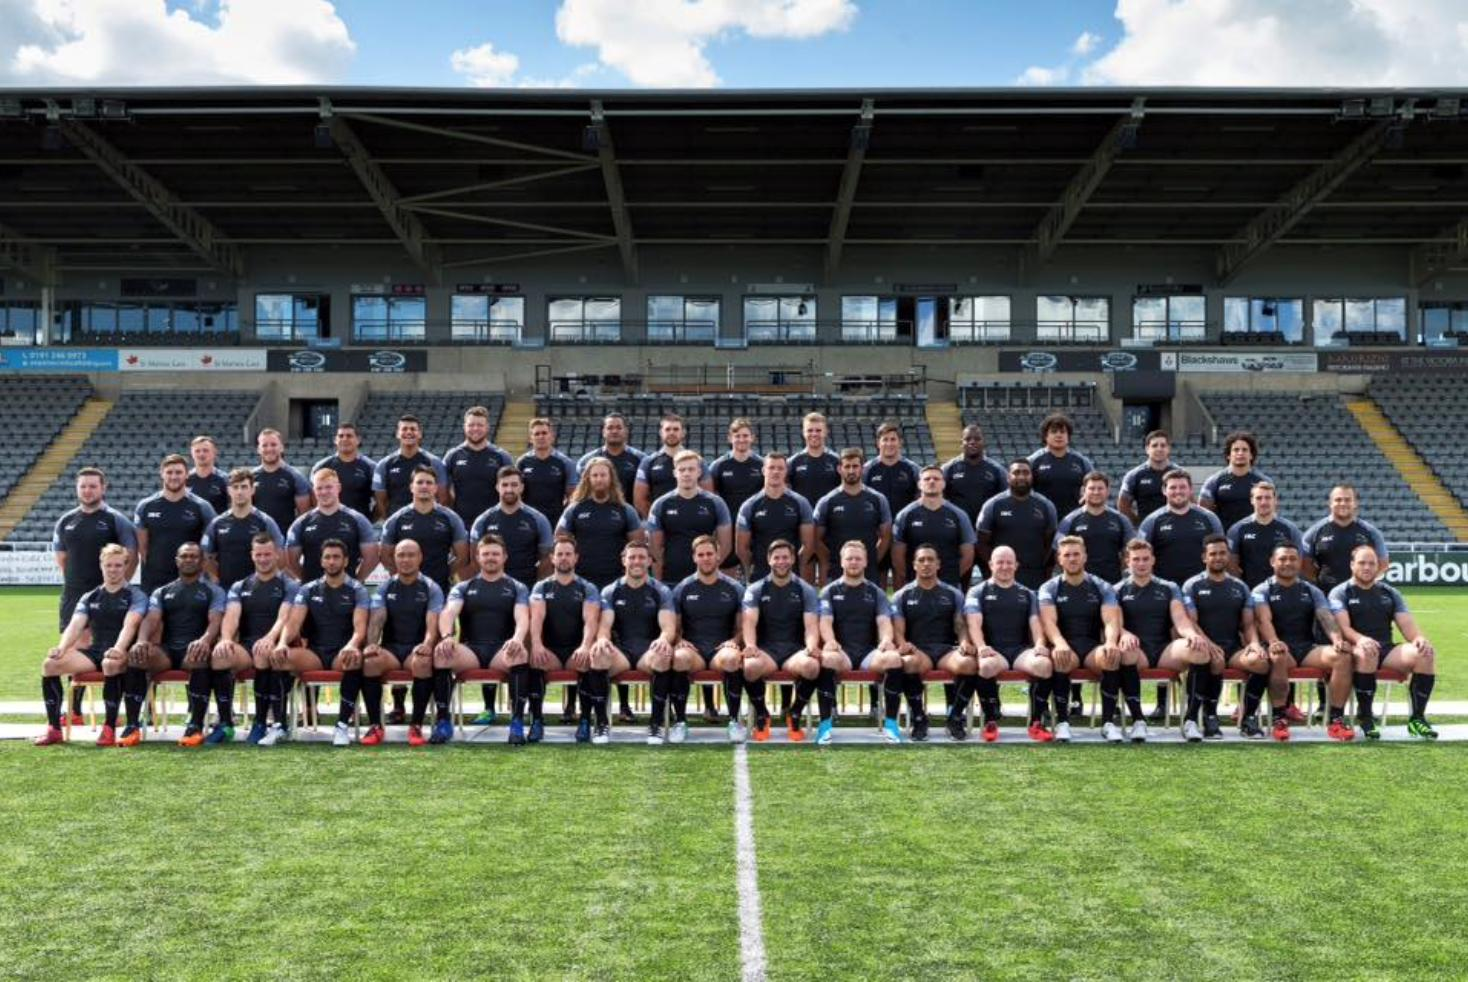 Newcastle Falcons team photo 17/18